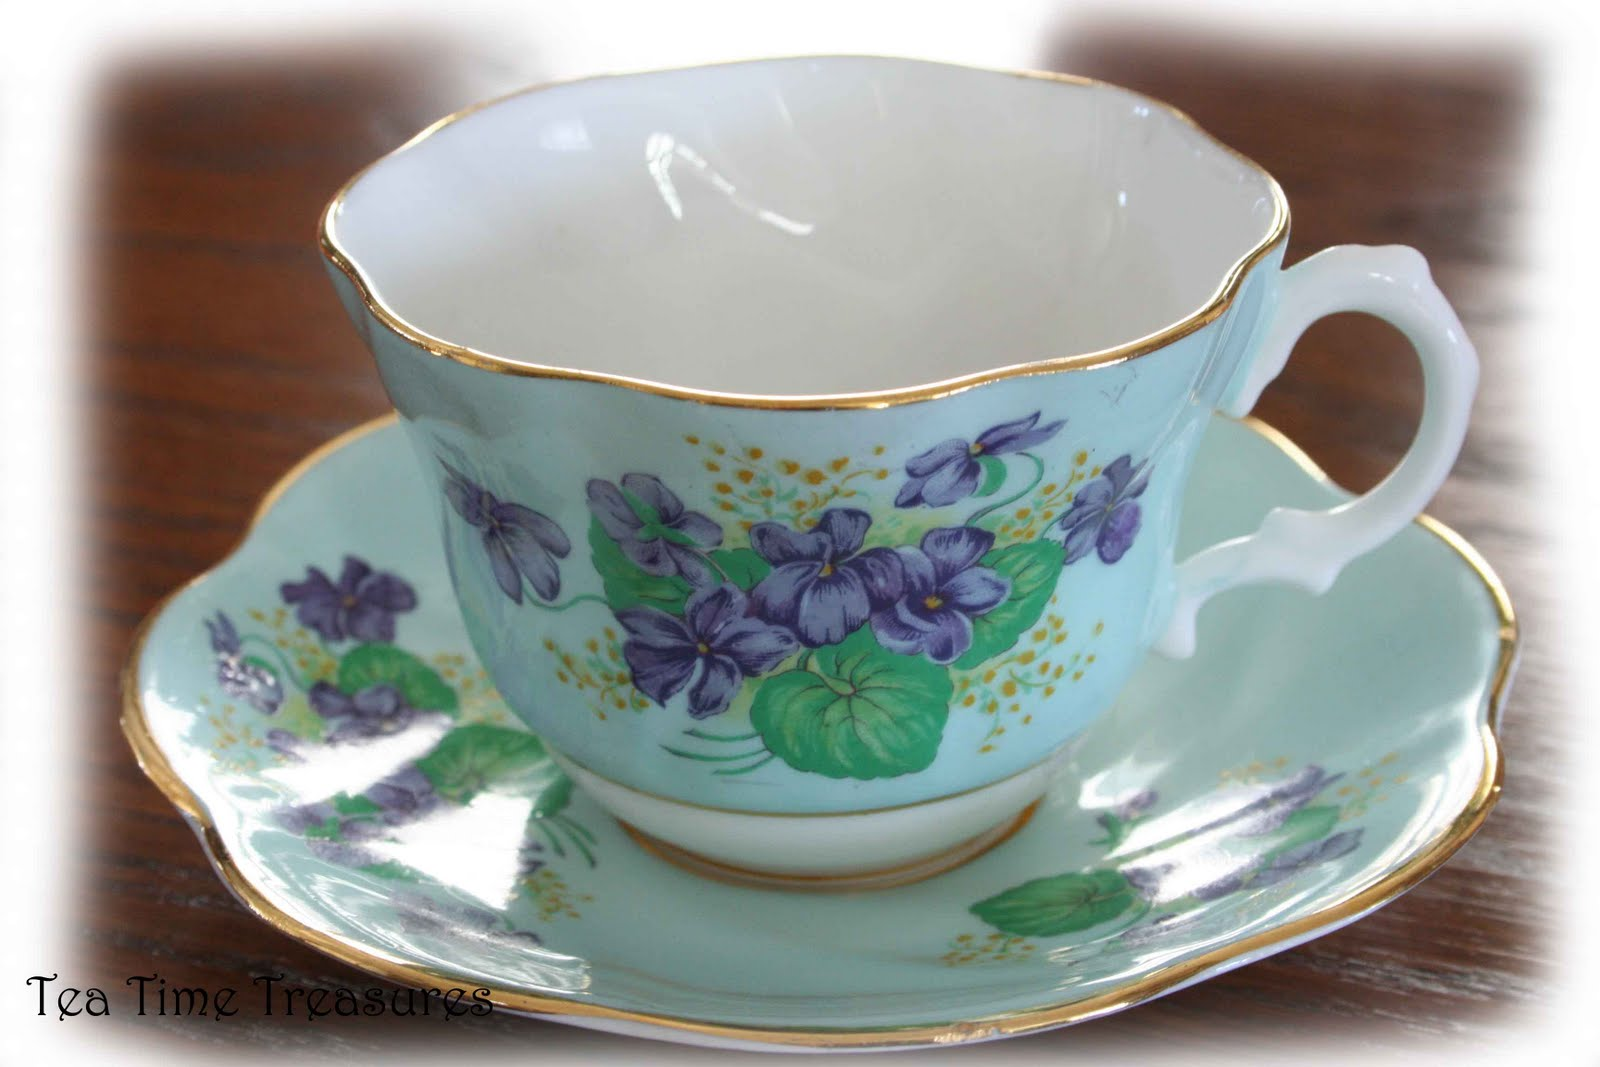 Image from tea-time-treasures.blogspot.com.au